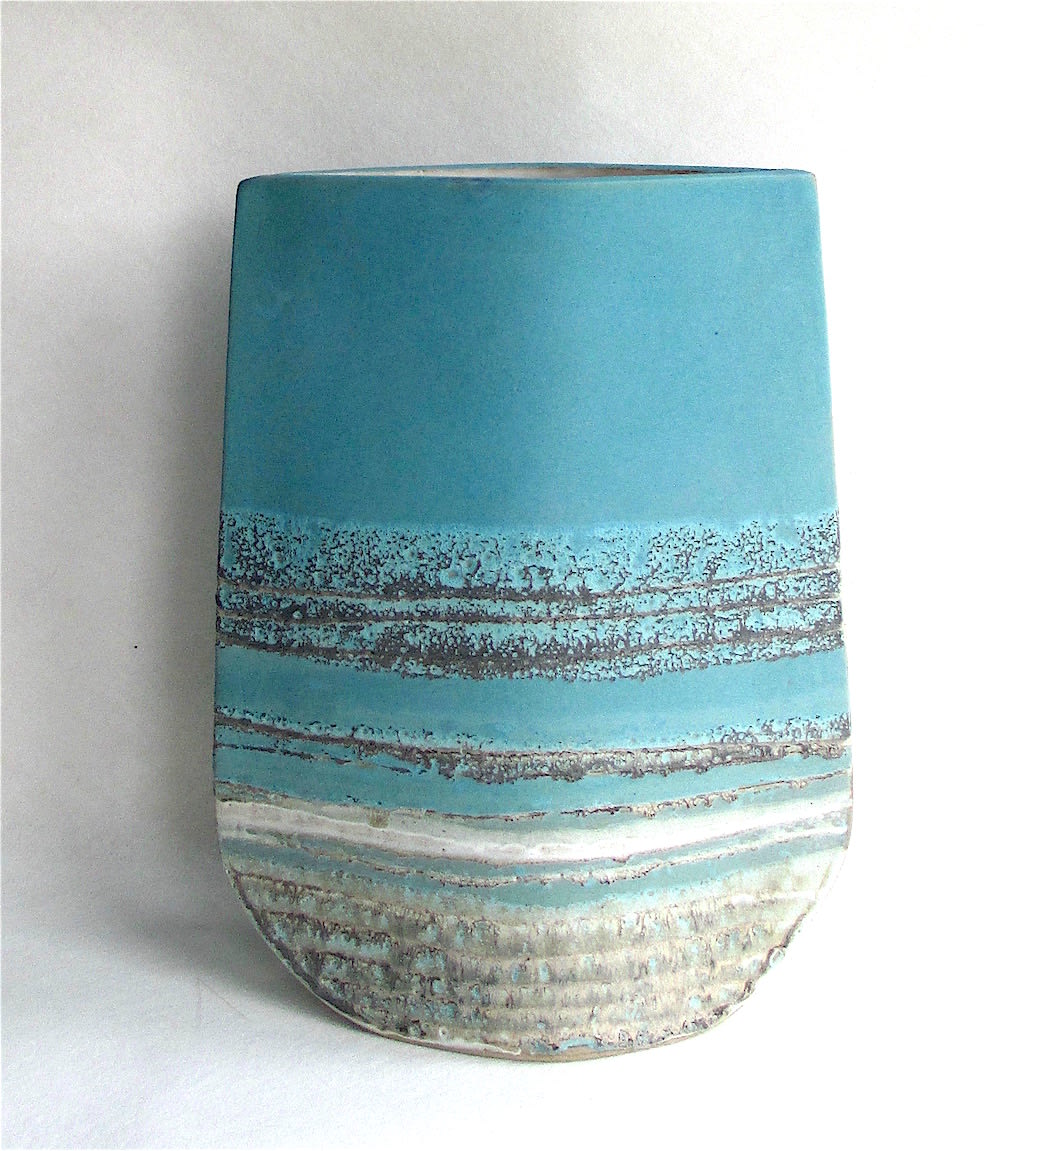 """<span class=""""link fancybox-details-link""""><a href=""""/artists/44-sarah-perry/works/7439-sarah-perry-turquoise-totem-vessel-2020/"""">View Detail Page</a></span><div class=""""artist""""><strong>Sarah Perry</strong></div> <div class=""""title""""><em>Turquoise Totem Vessel</em>, 2020</div> <div class=""""signed_and_dated"""">Impressed with the artist's seal mark 'SP'</div> <div class=""""medium"""">stoneware</div> <div class=""""dimensions"""">h. 32.5 cm x w. 22 cm x d. 9 cm</div><div class=""""price"""">£550.00</div><div class=""""copyright_line"""">Own Art: £55 x 10 months, 0% APR</div>"""